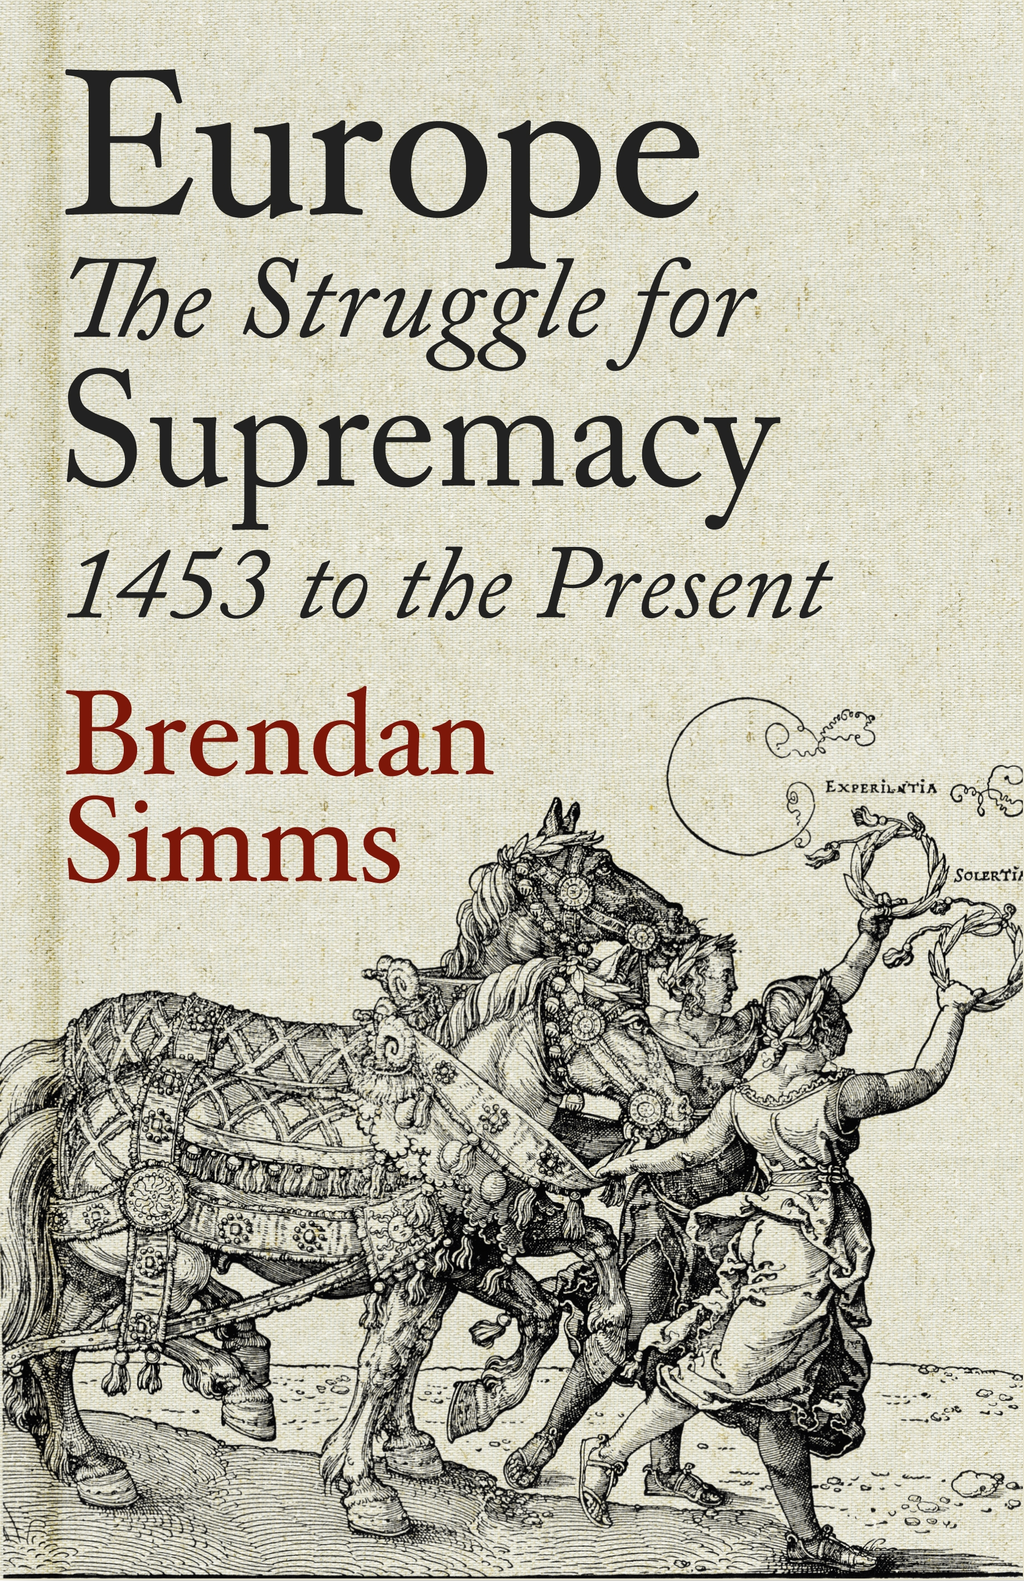 Europe The Struggle for Supremacy,  1453 to the Present